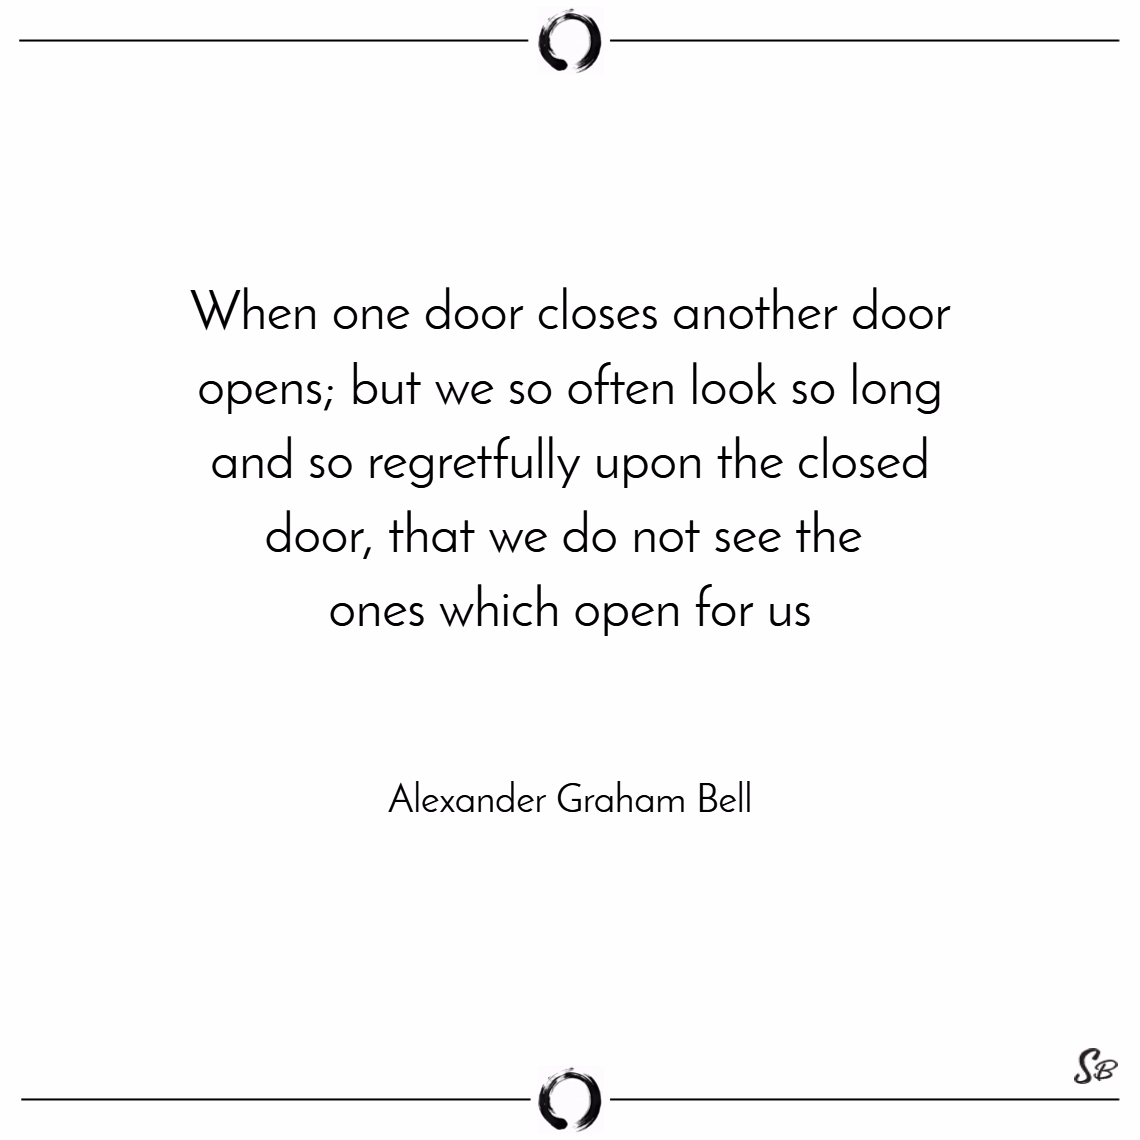 When one door closes another door opens; but we so often look so long and so regretfully upon the closed door, that we do not see the ones which open for us. – alexander graham bell